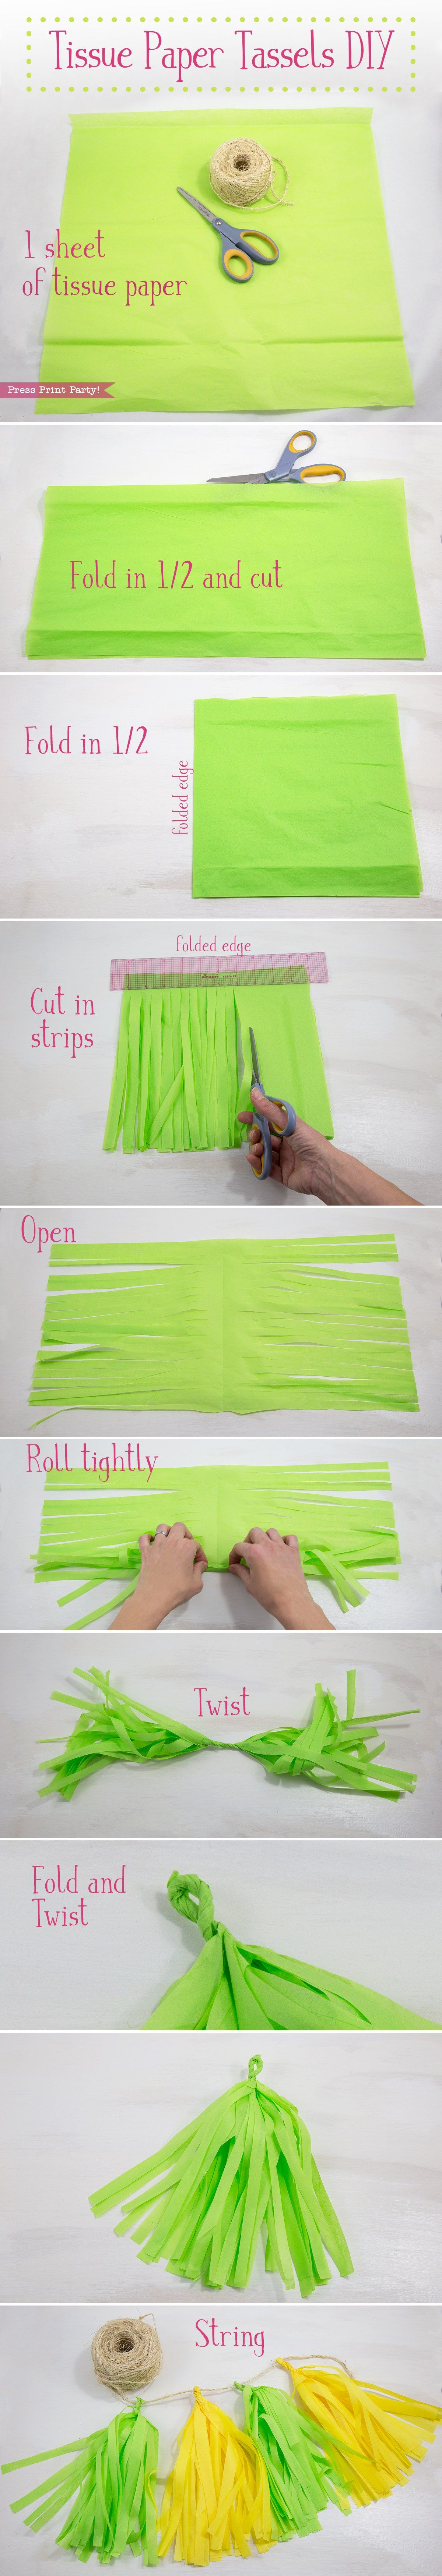 Learn how to make tissue paper tassels and garlands in any color to match your party theme. They're cheap, super festive, and easy